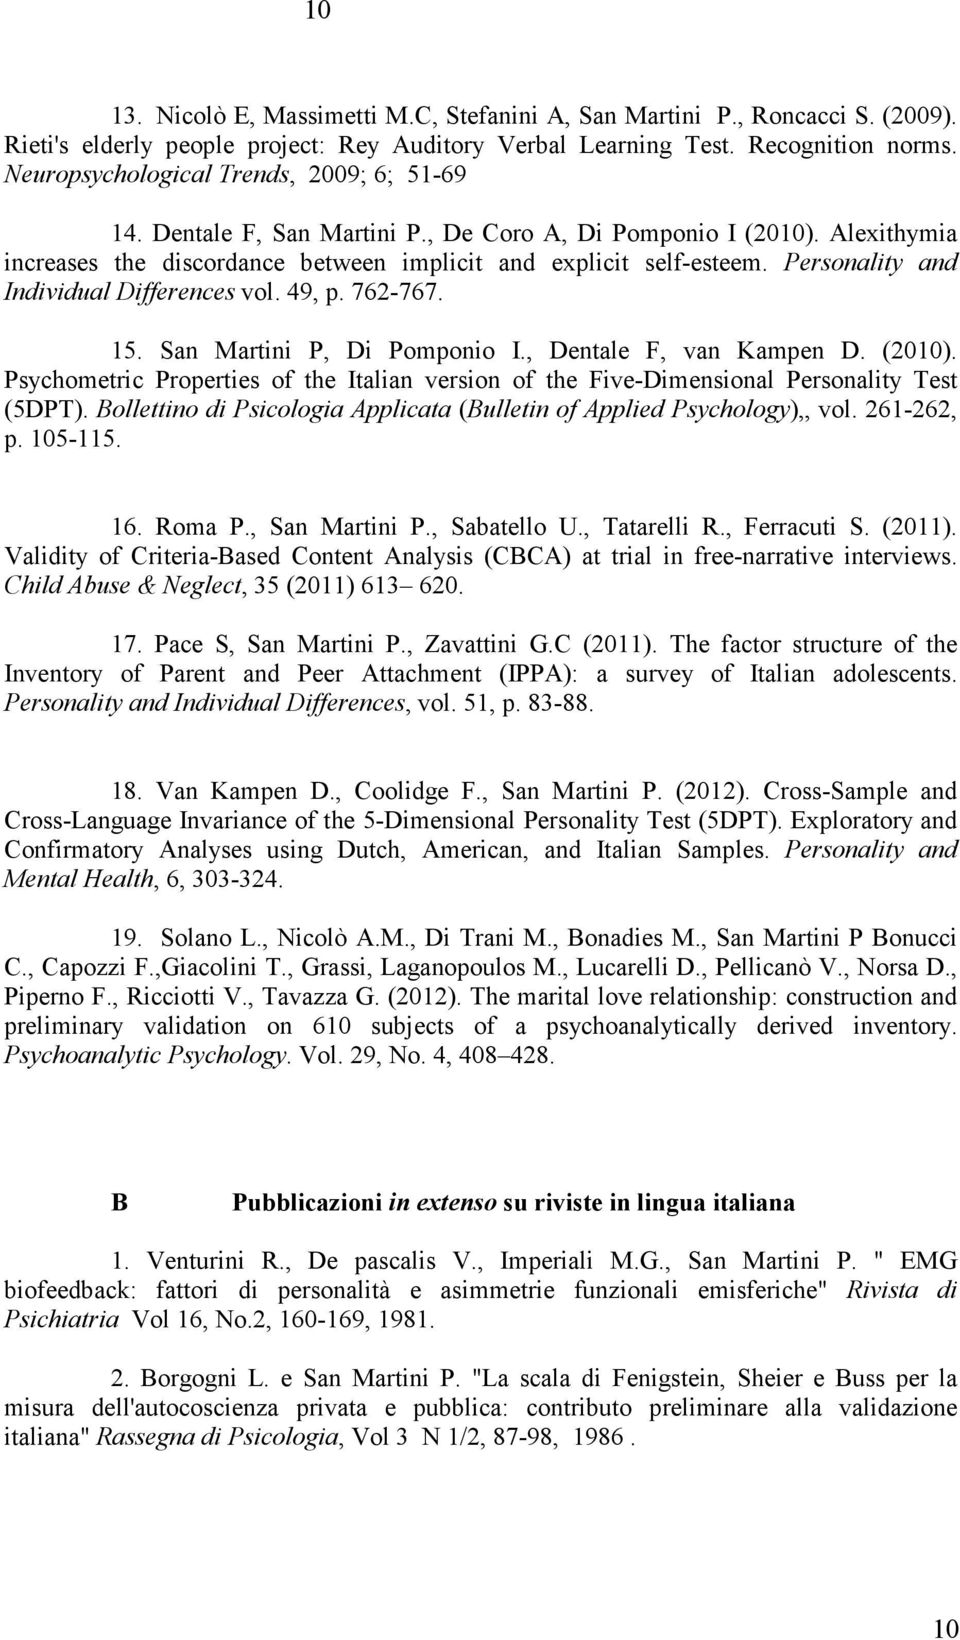 Personality and Individual Differences vol. 49, p. 762-767. 15. San Martini P, Di Pomponio I., Dentale F, van Kampen D. (2010).